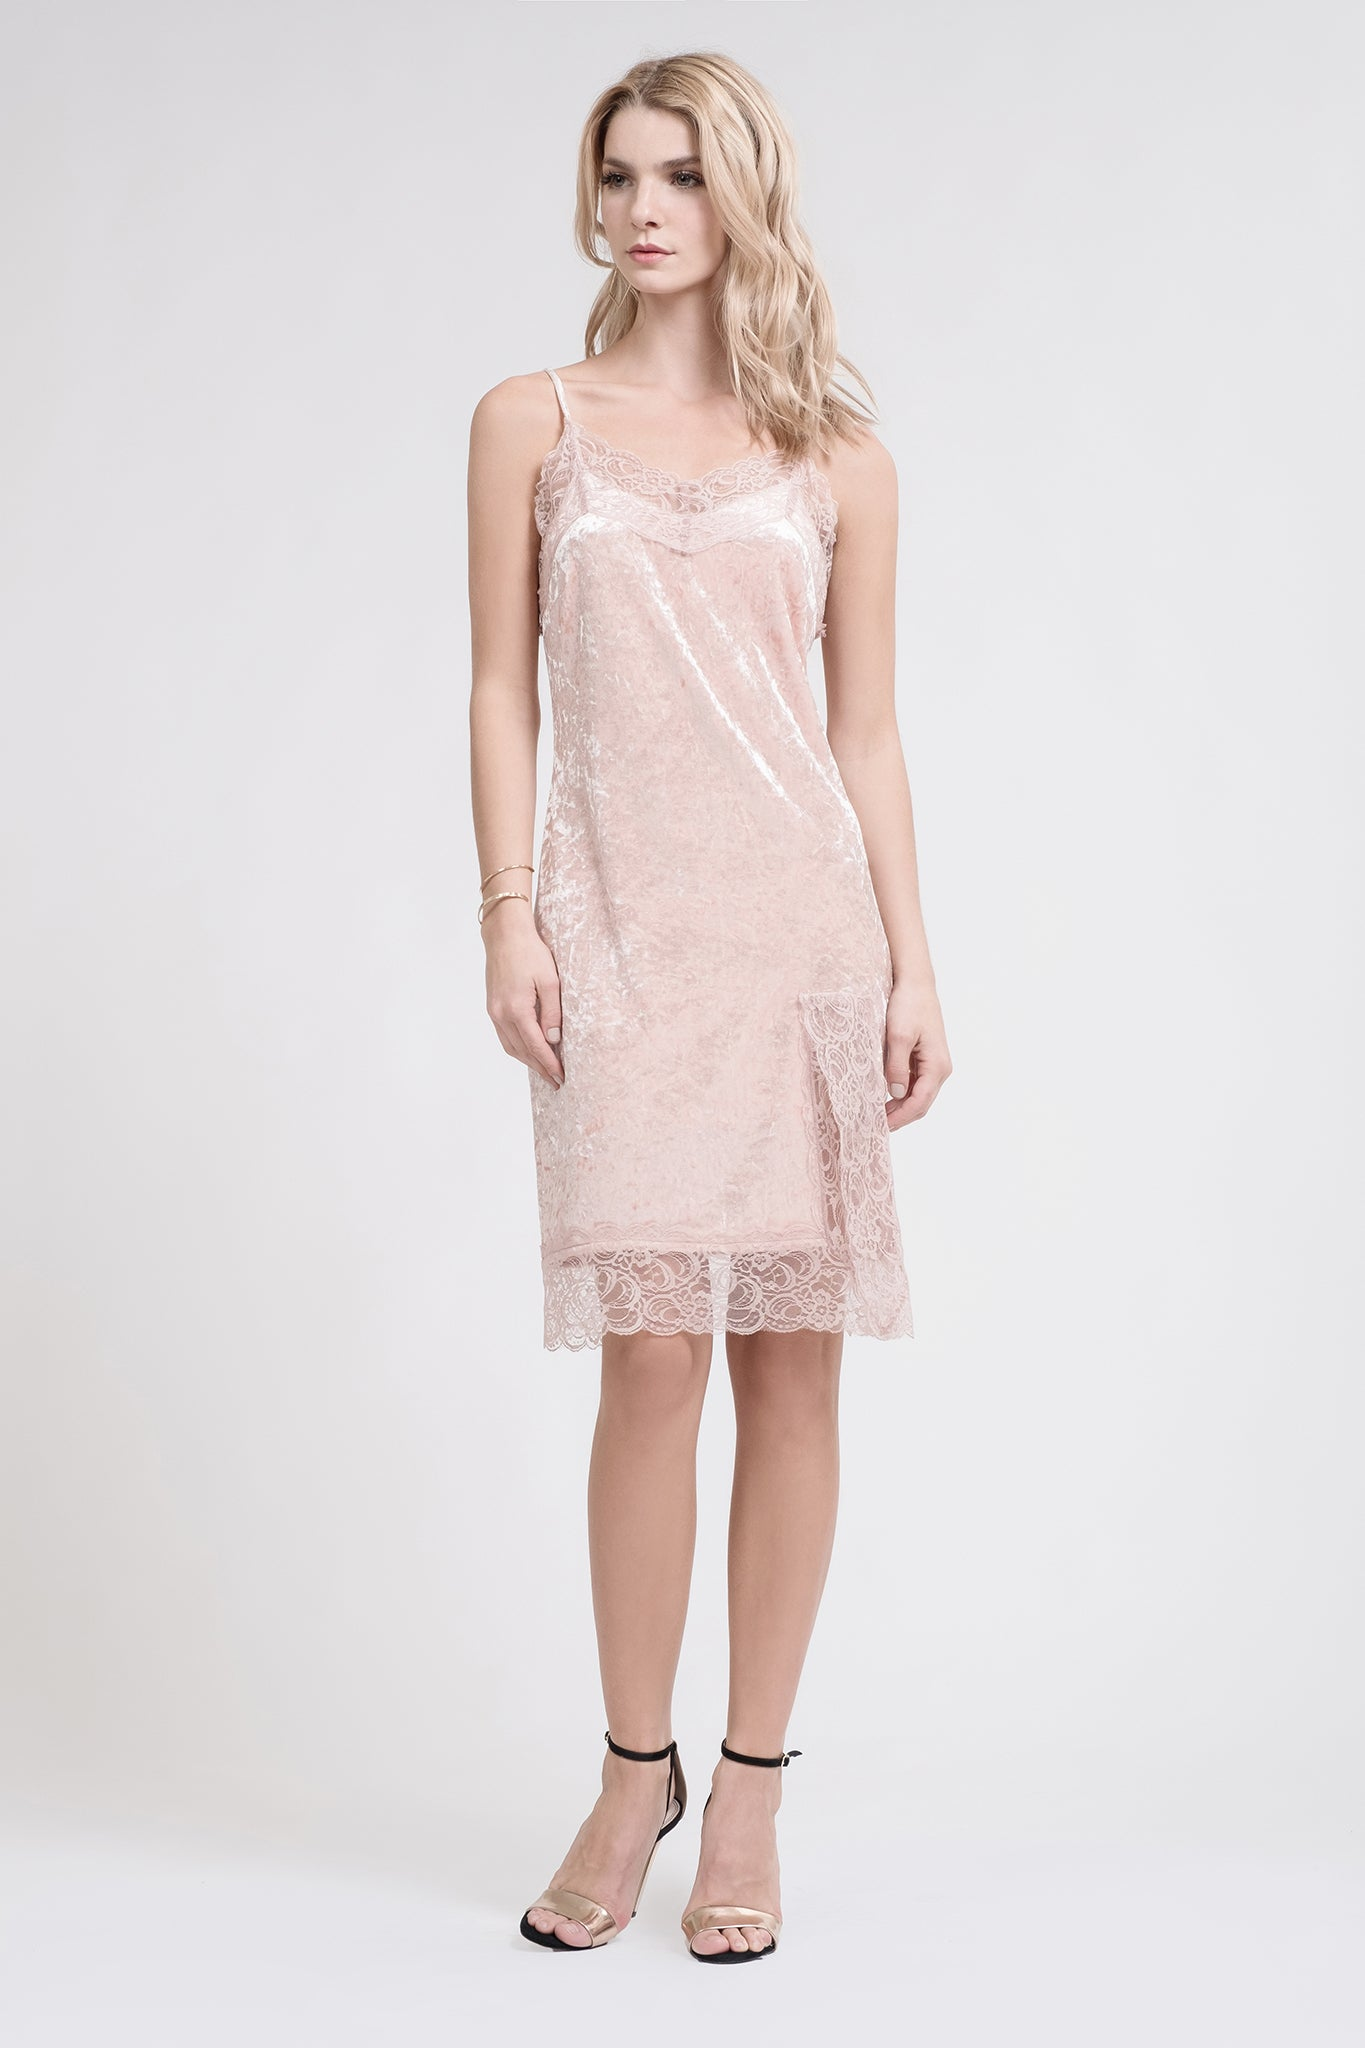 on sale new appearance affordable price Slip Dress with Lace – Fashion dresses